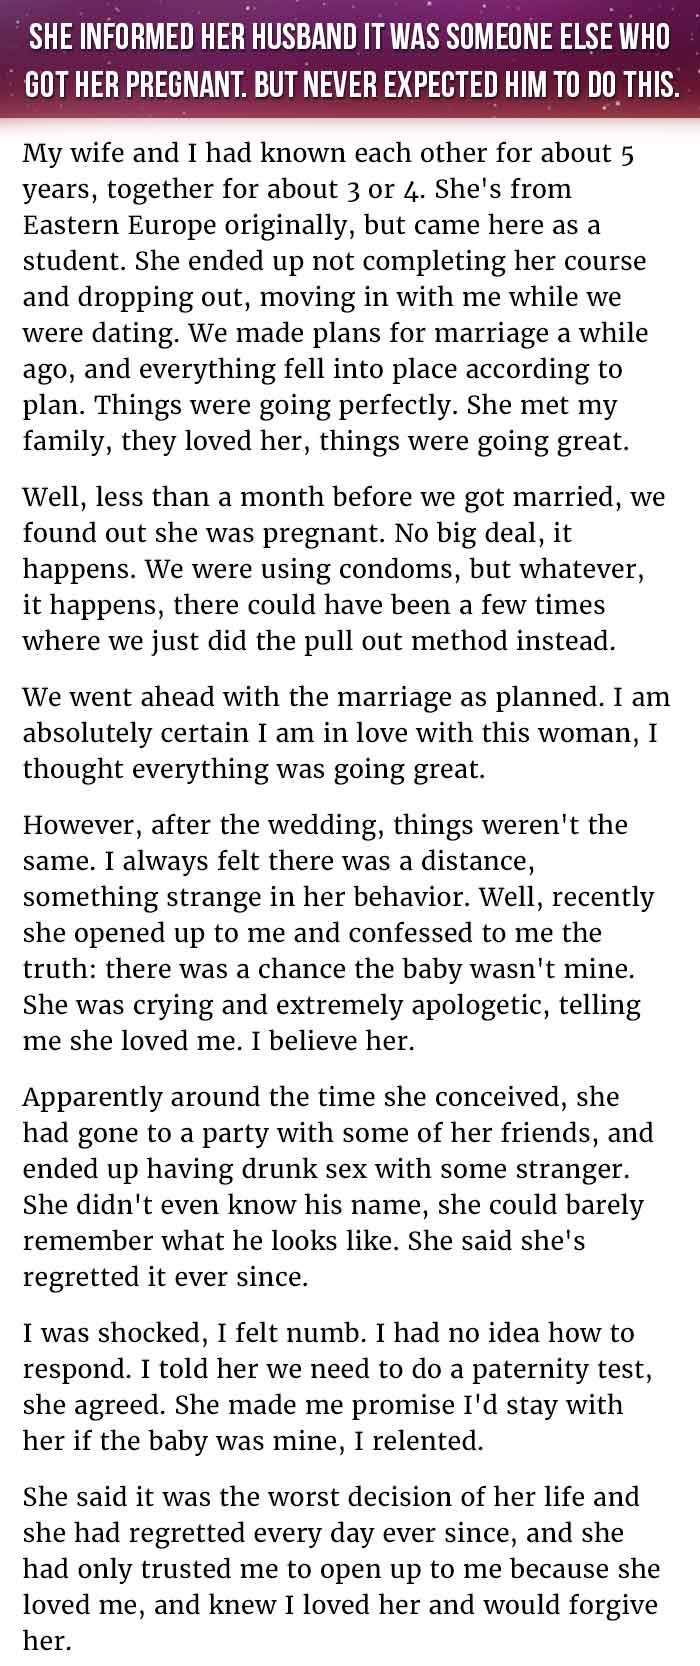 Wife Informs Husband Its Someone Else Who Got Her